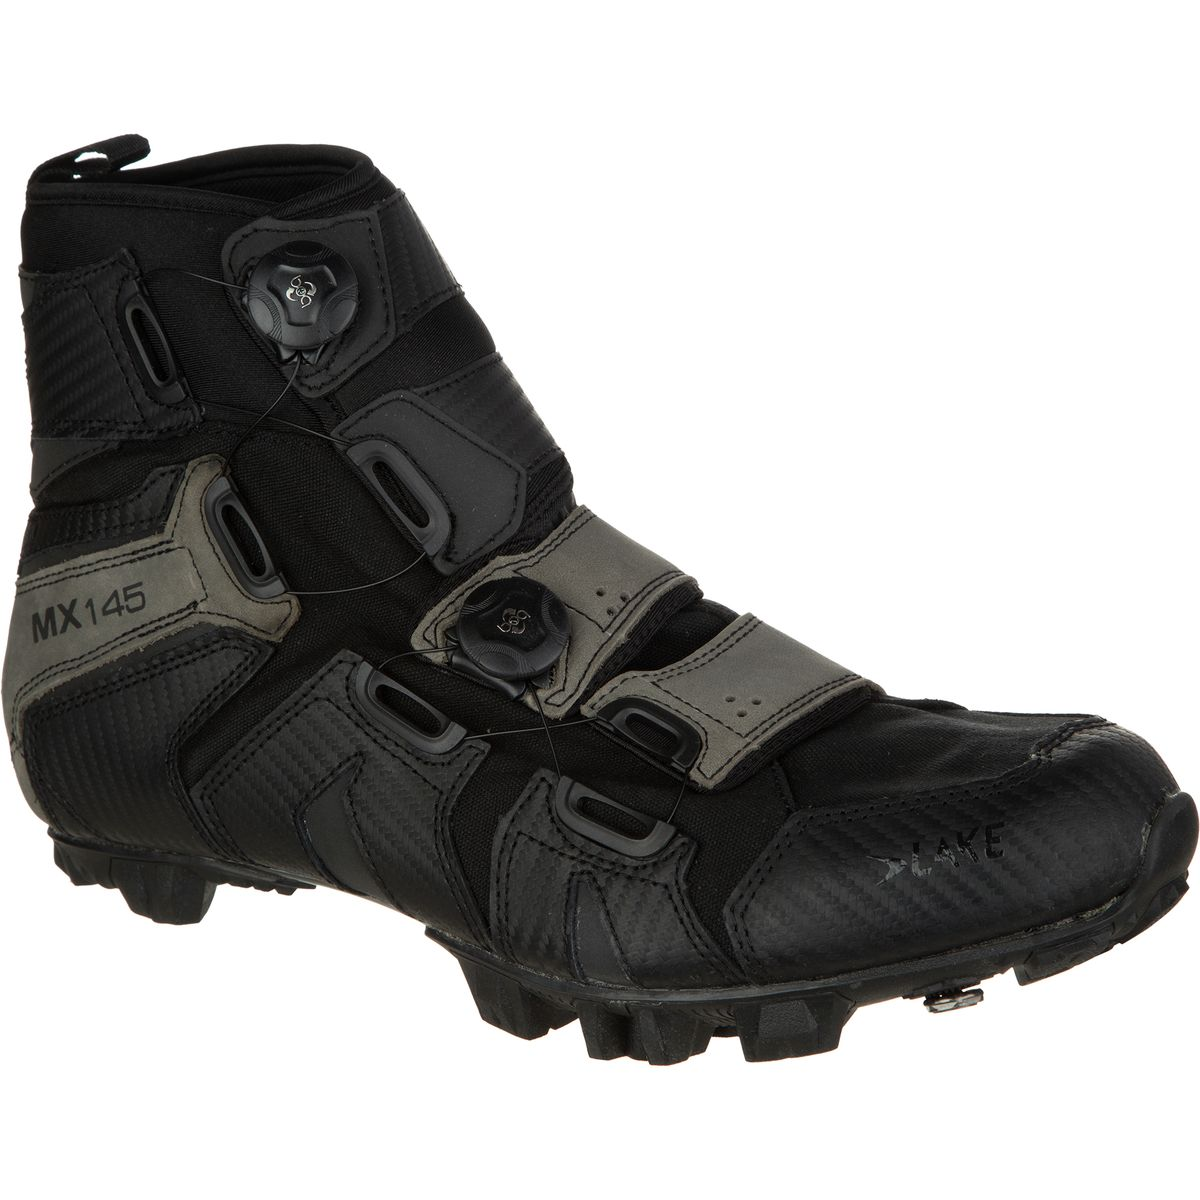 Lake MX145 Shoes Mens